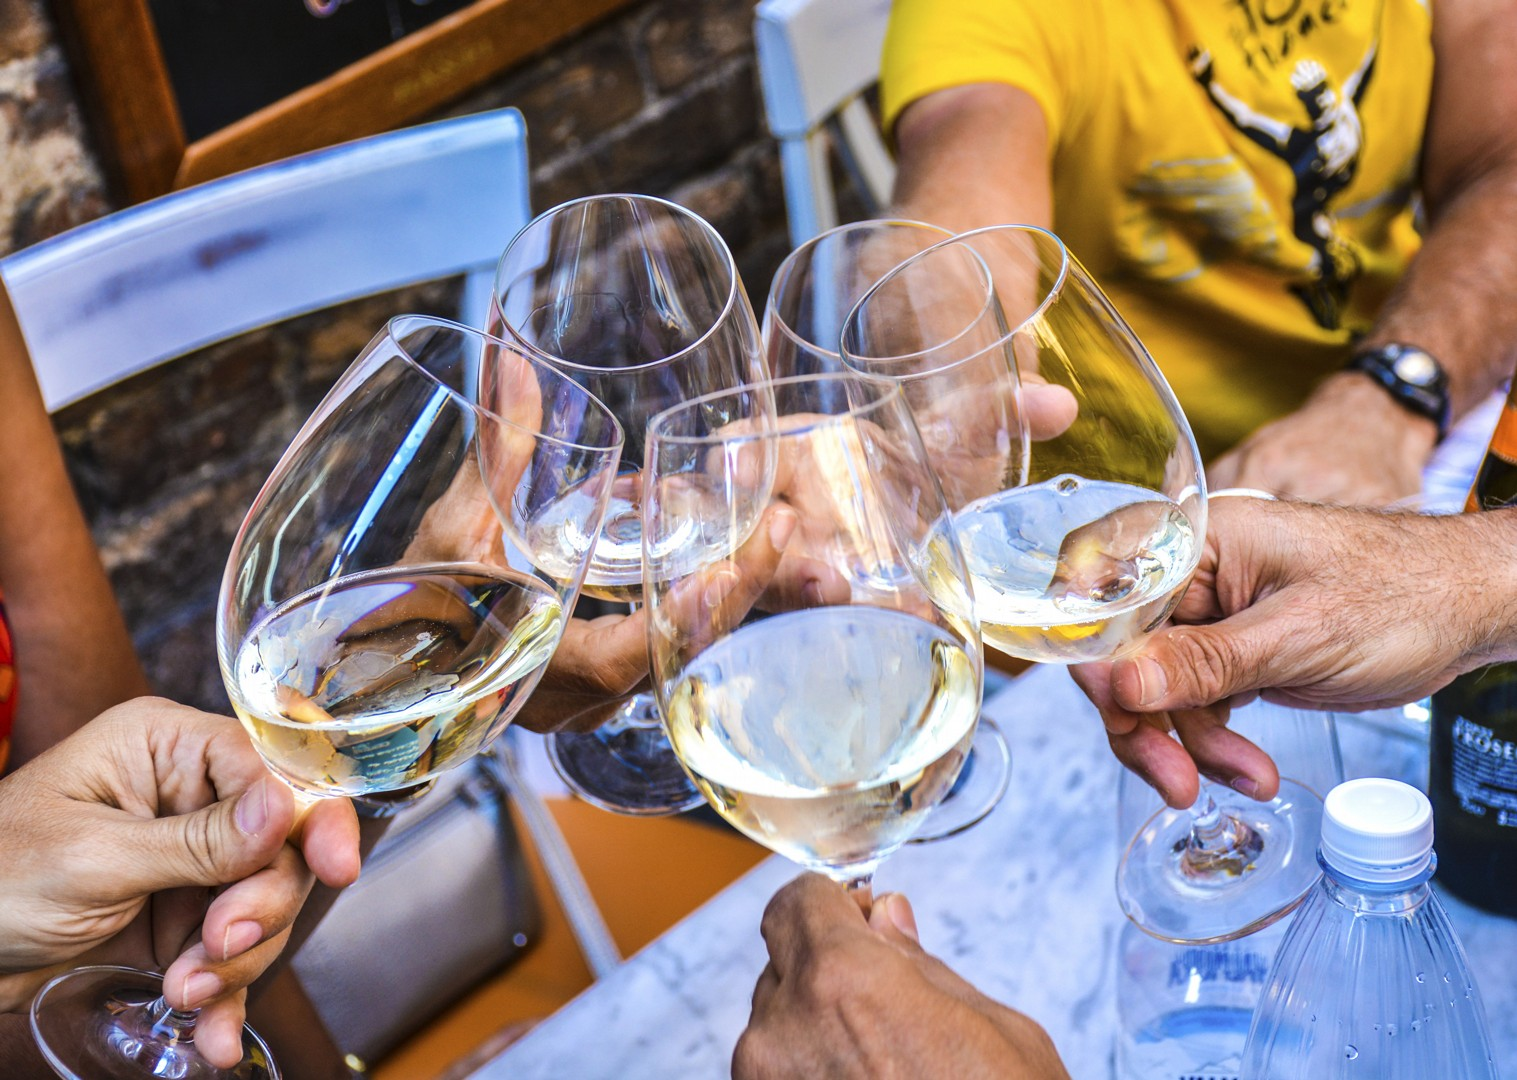 white-wine-traditional-italy-fine-food-cycling-tour.jpg - Italy - Tuscany - Giro della Toscana - Guided Road Cycling Holiday - Road Cycling